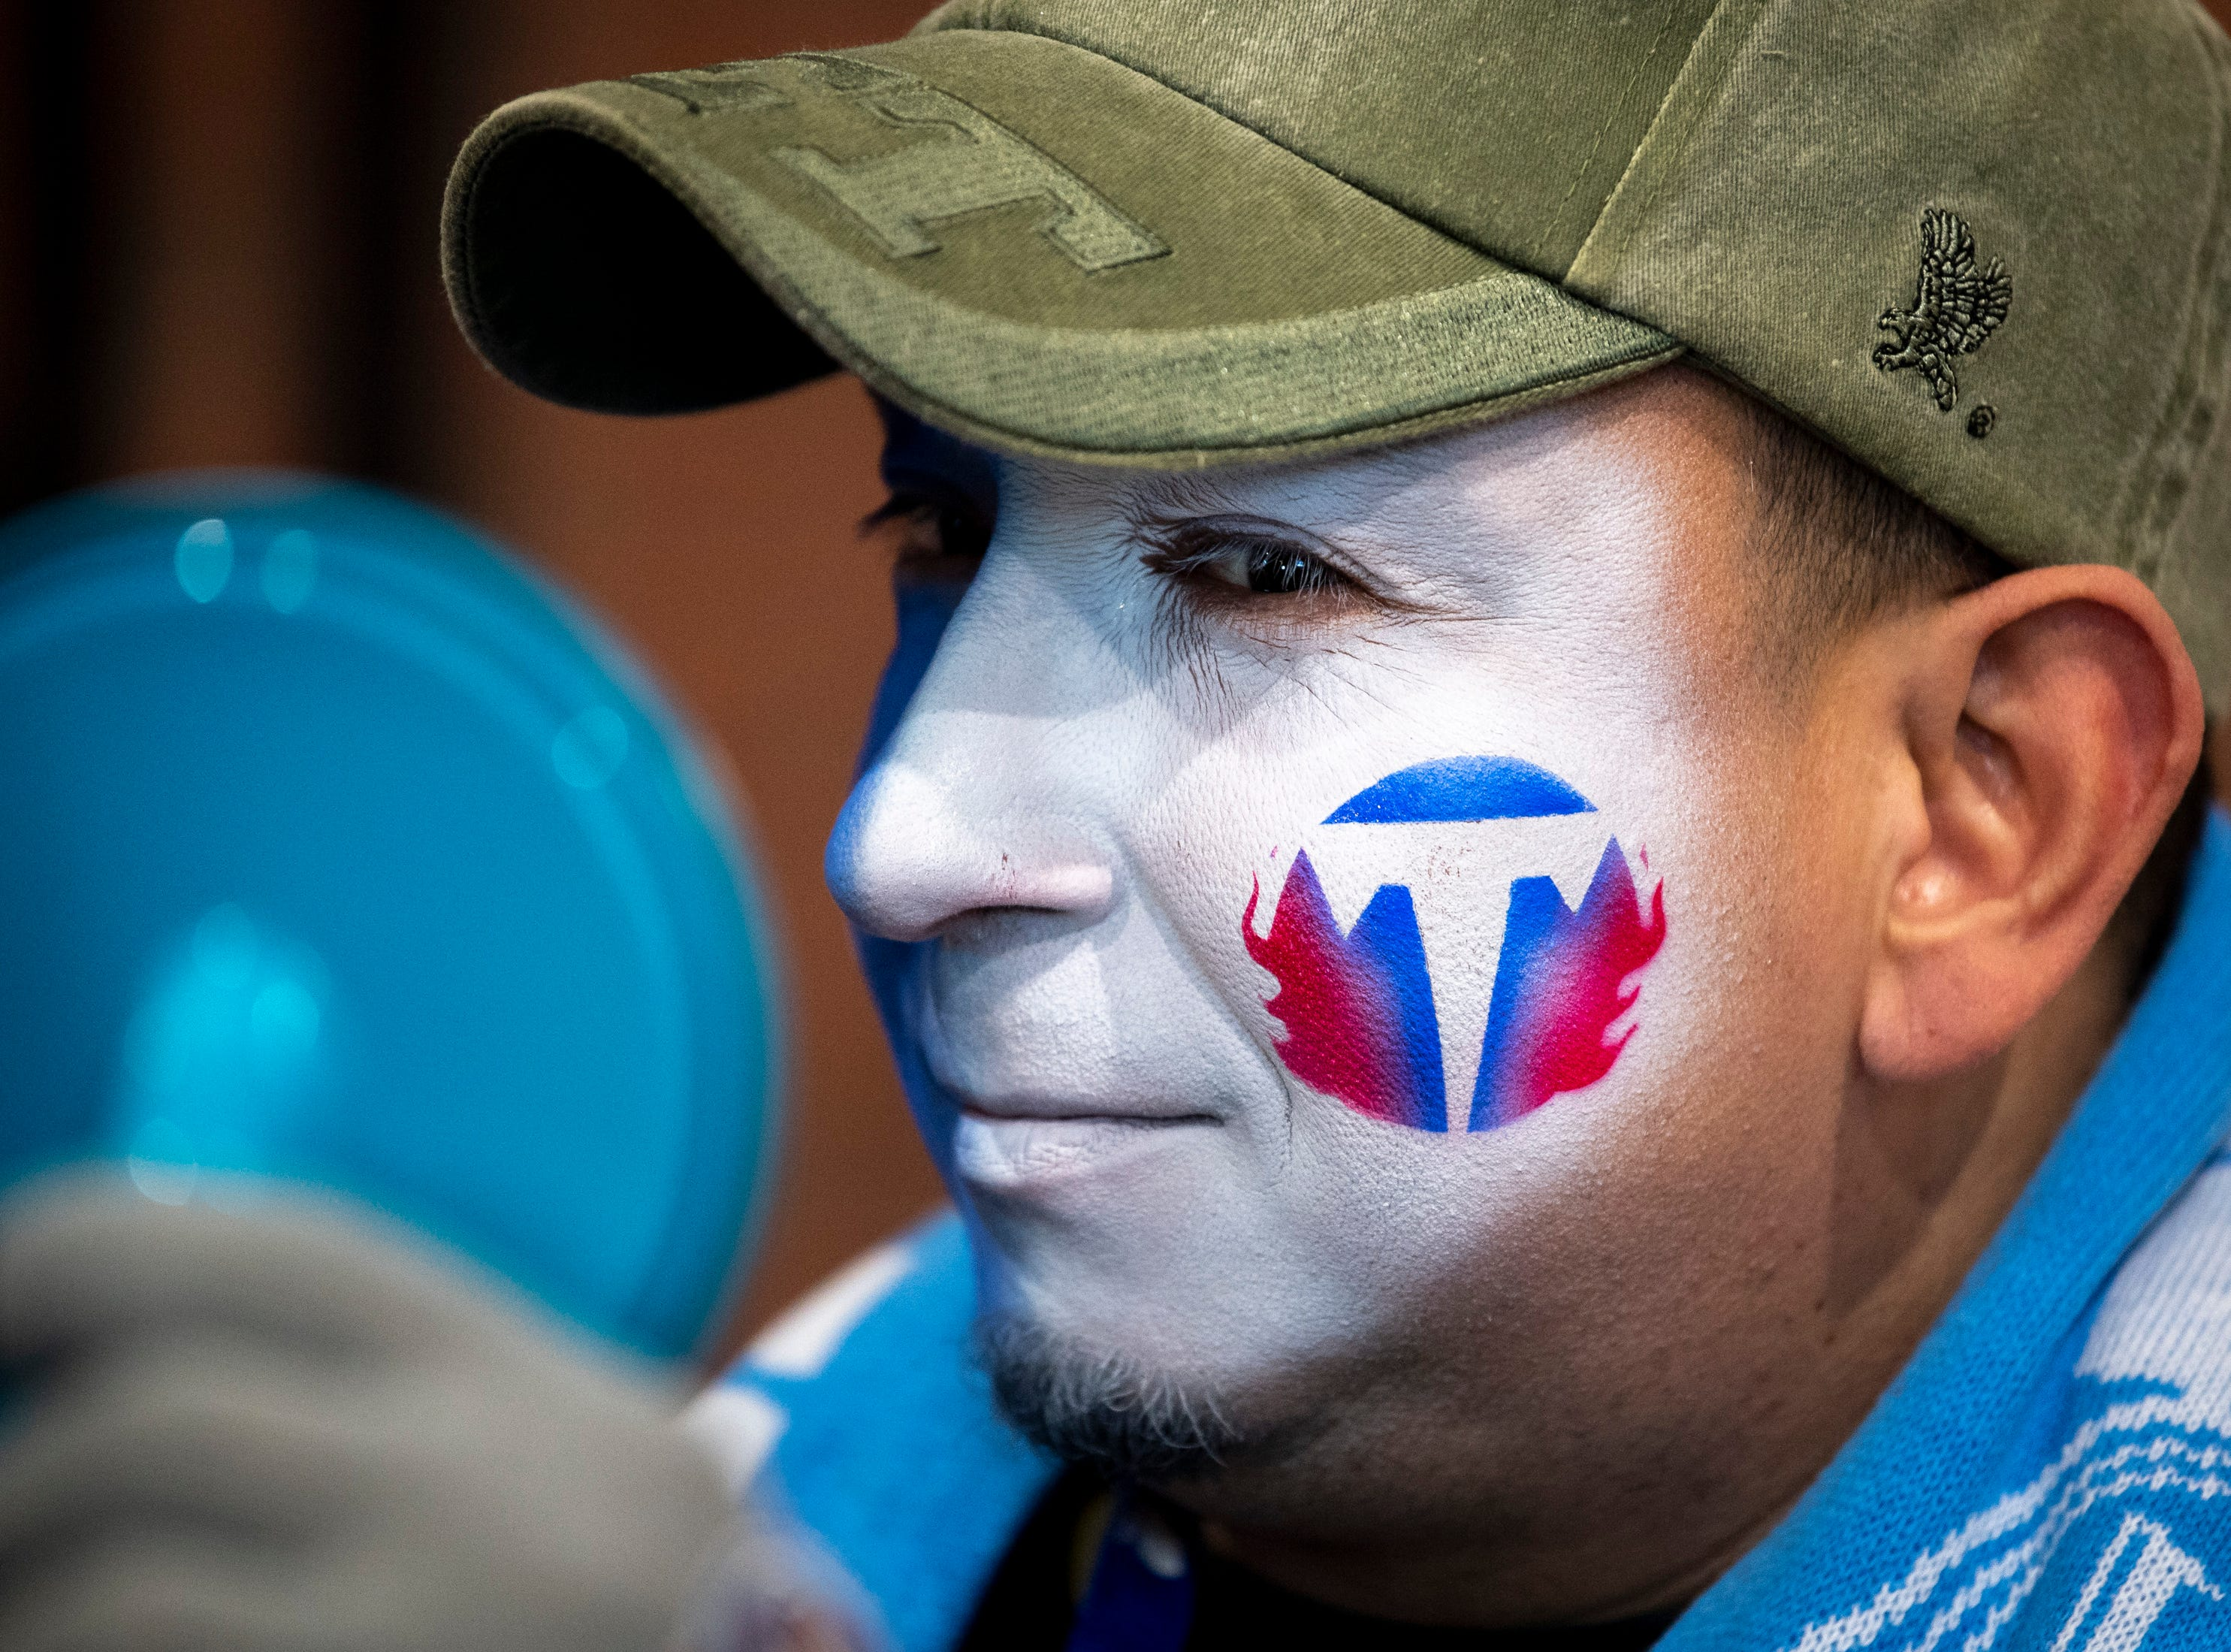 Alex Rivera, of Nashville, checks out his freshly painted face before the game between the Tennessee Titans and the Jacksonville Jaguars at Nissan Stadium in Nashville, Tenn., Thursday, Dec. 6, 2018.